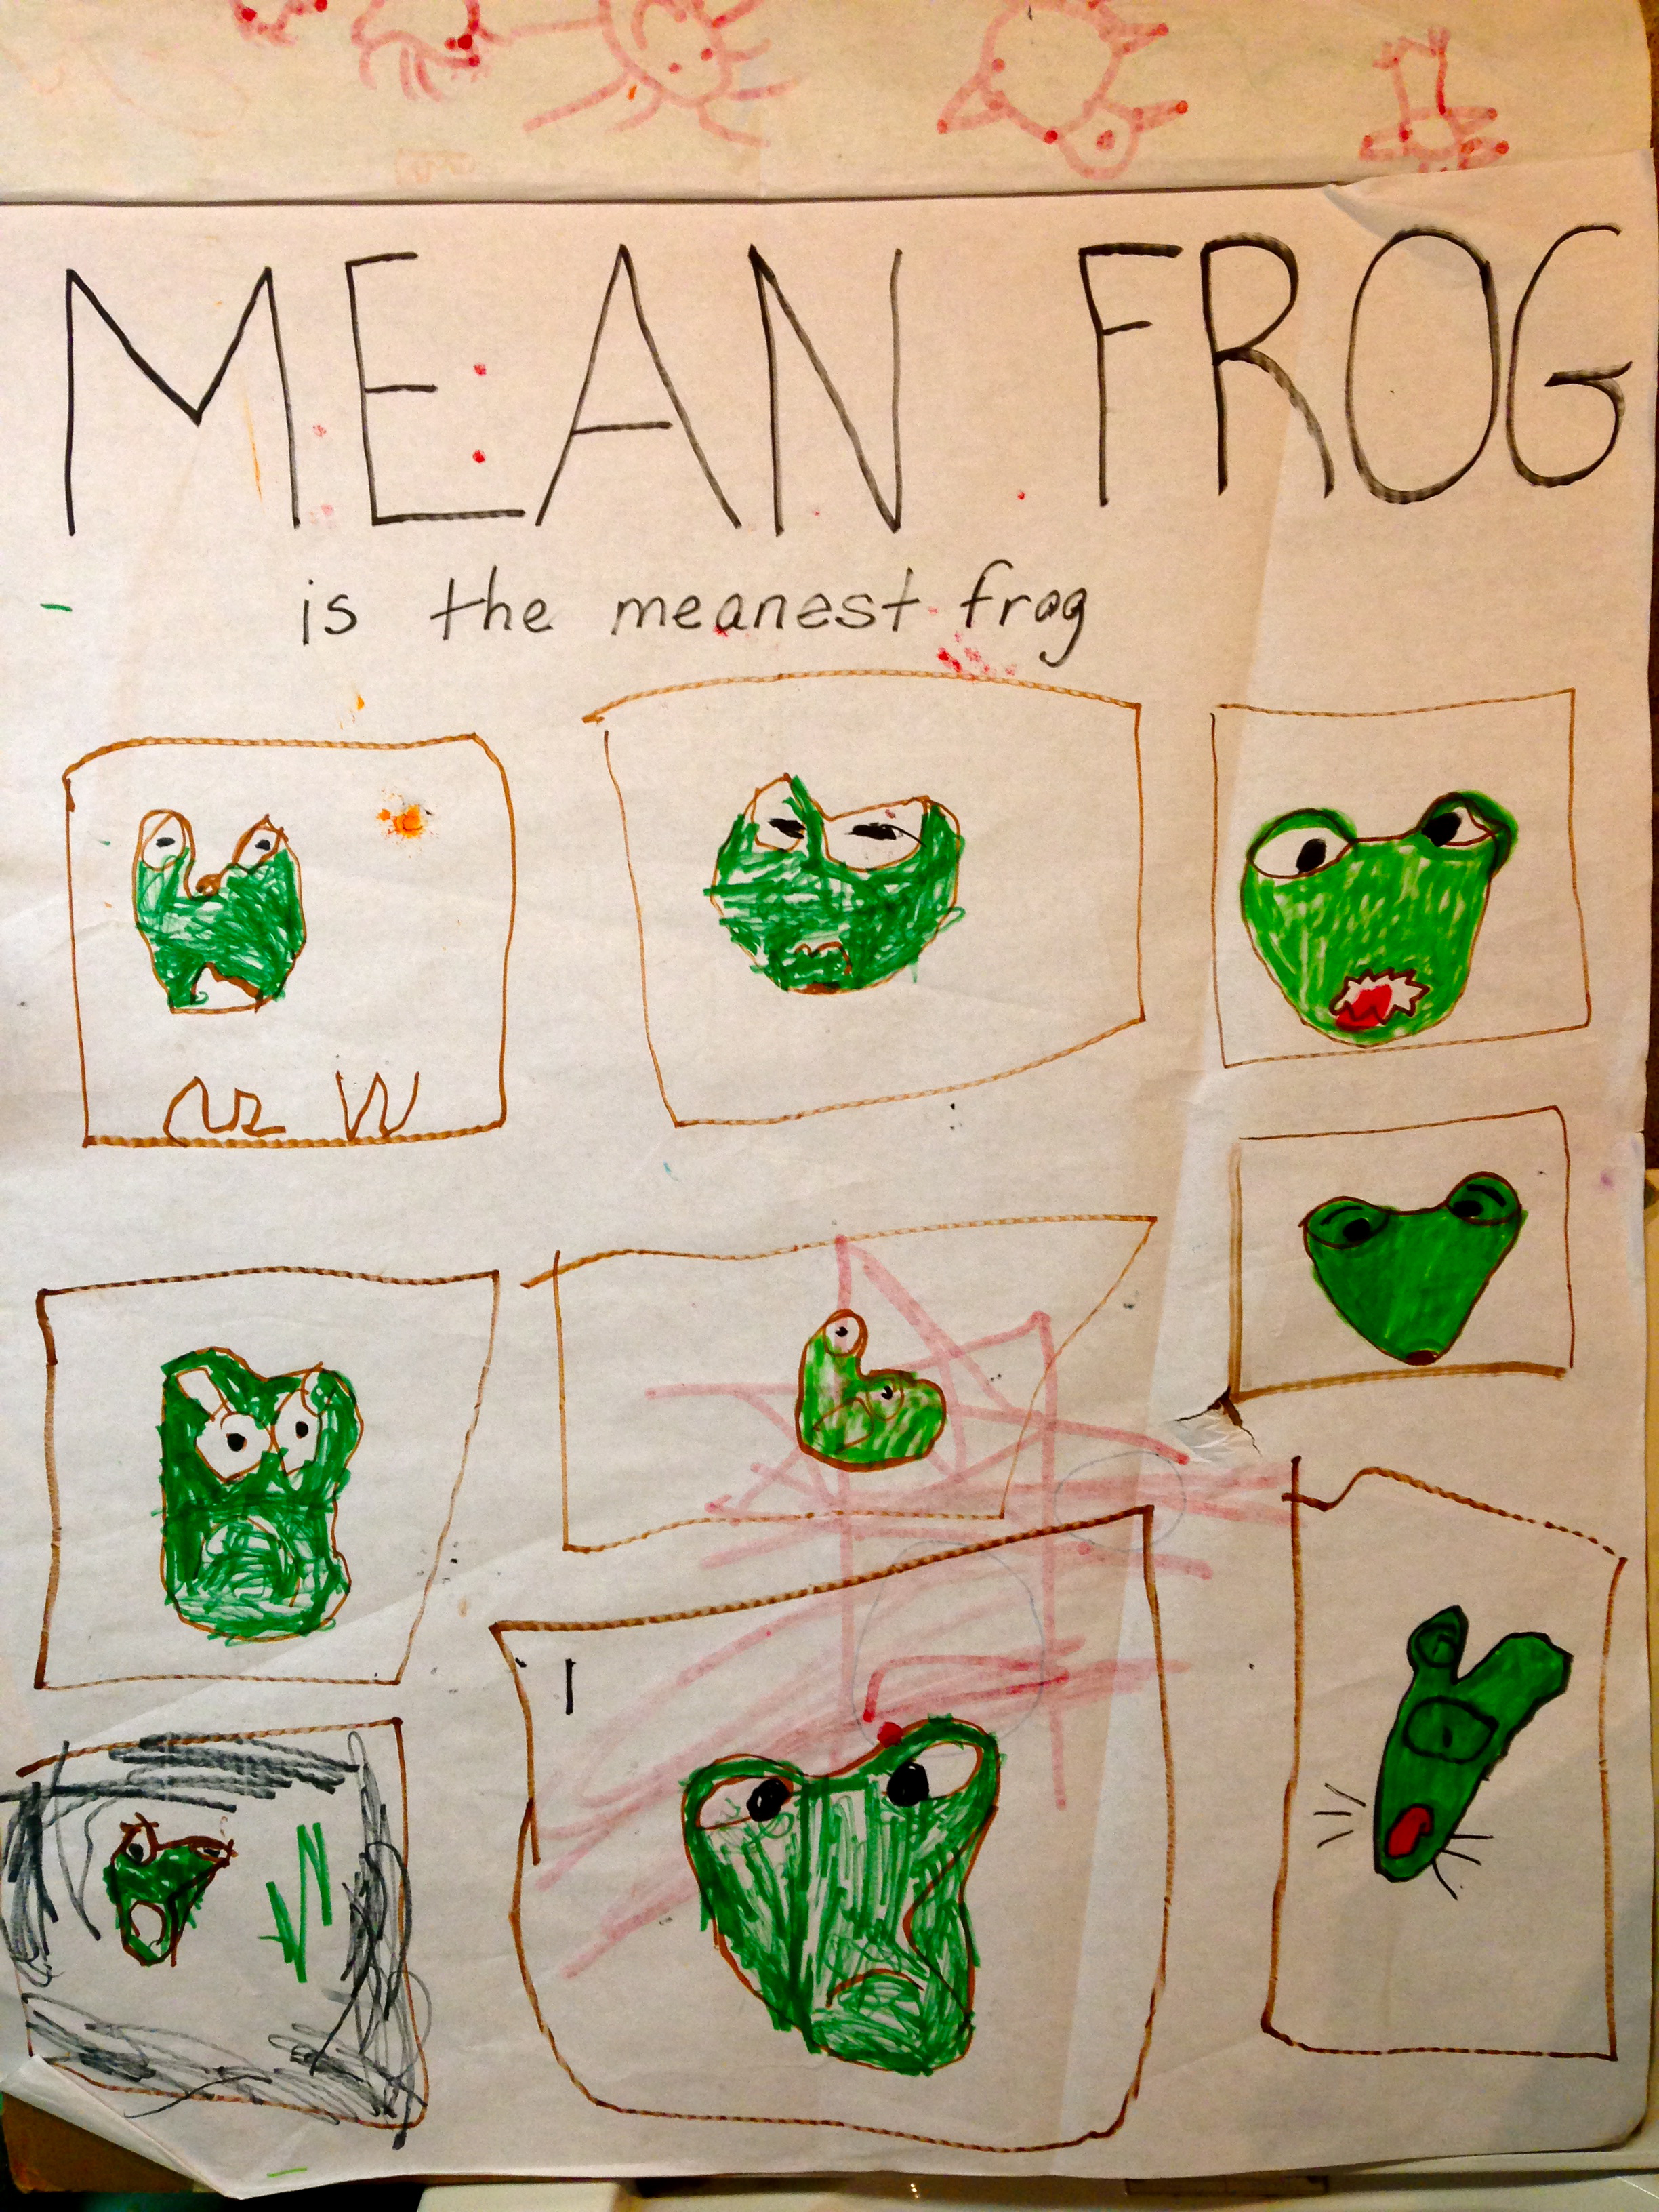 The Mean Frog is the Meanest Frog:  Drawing by Author's Son